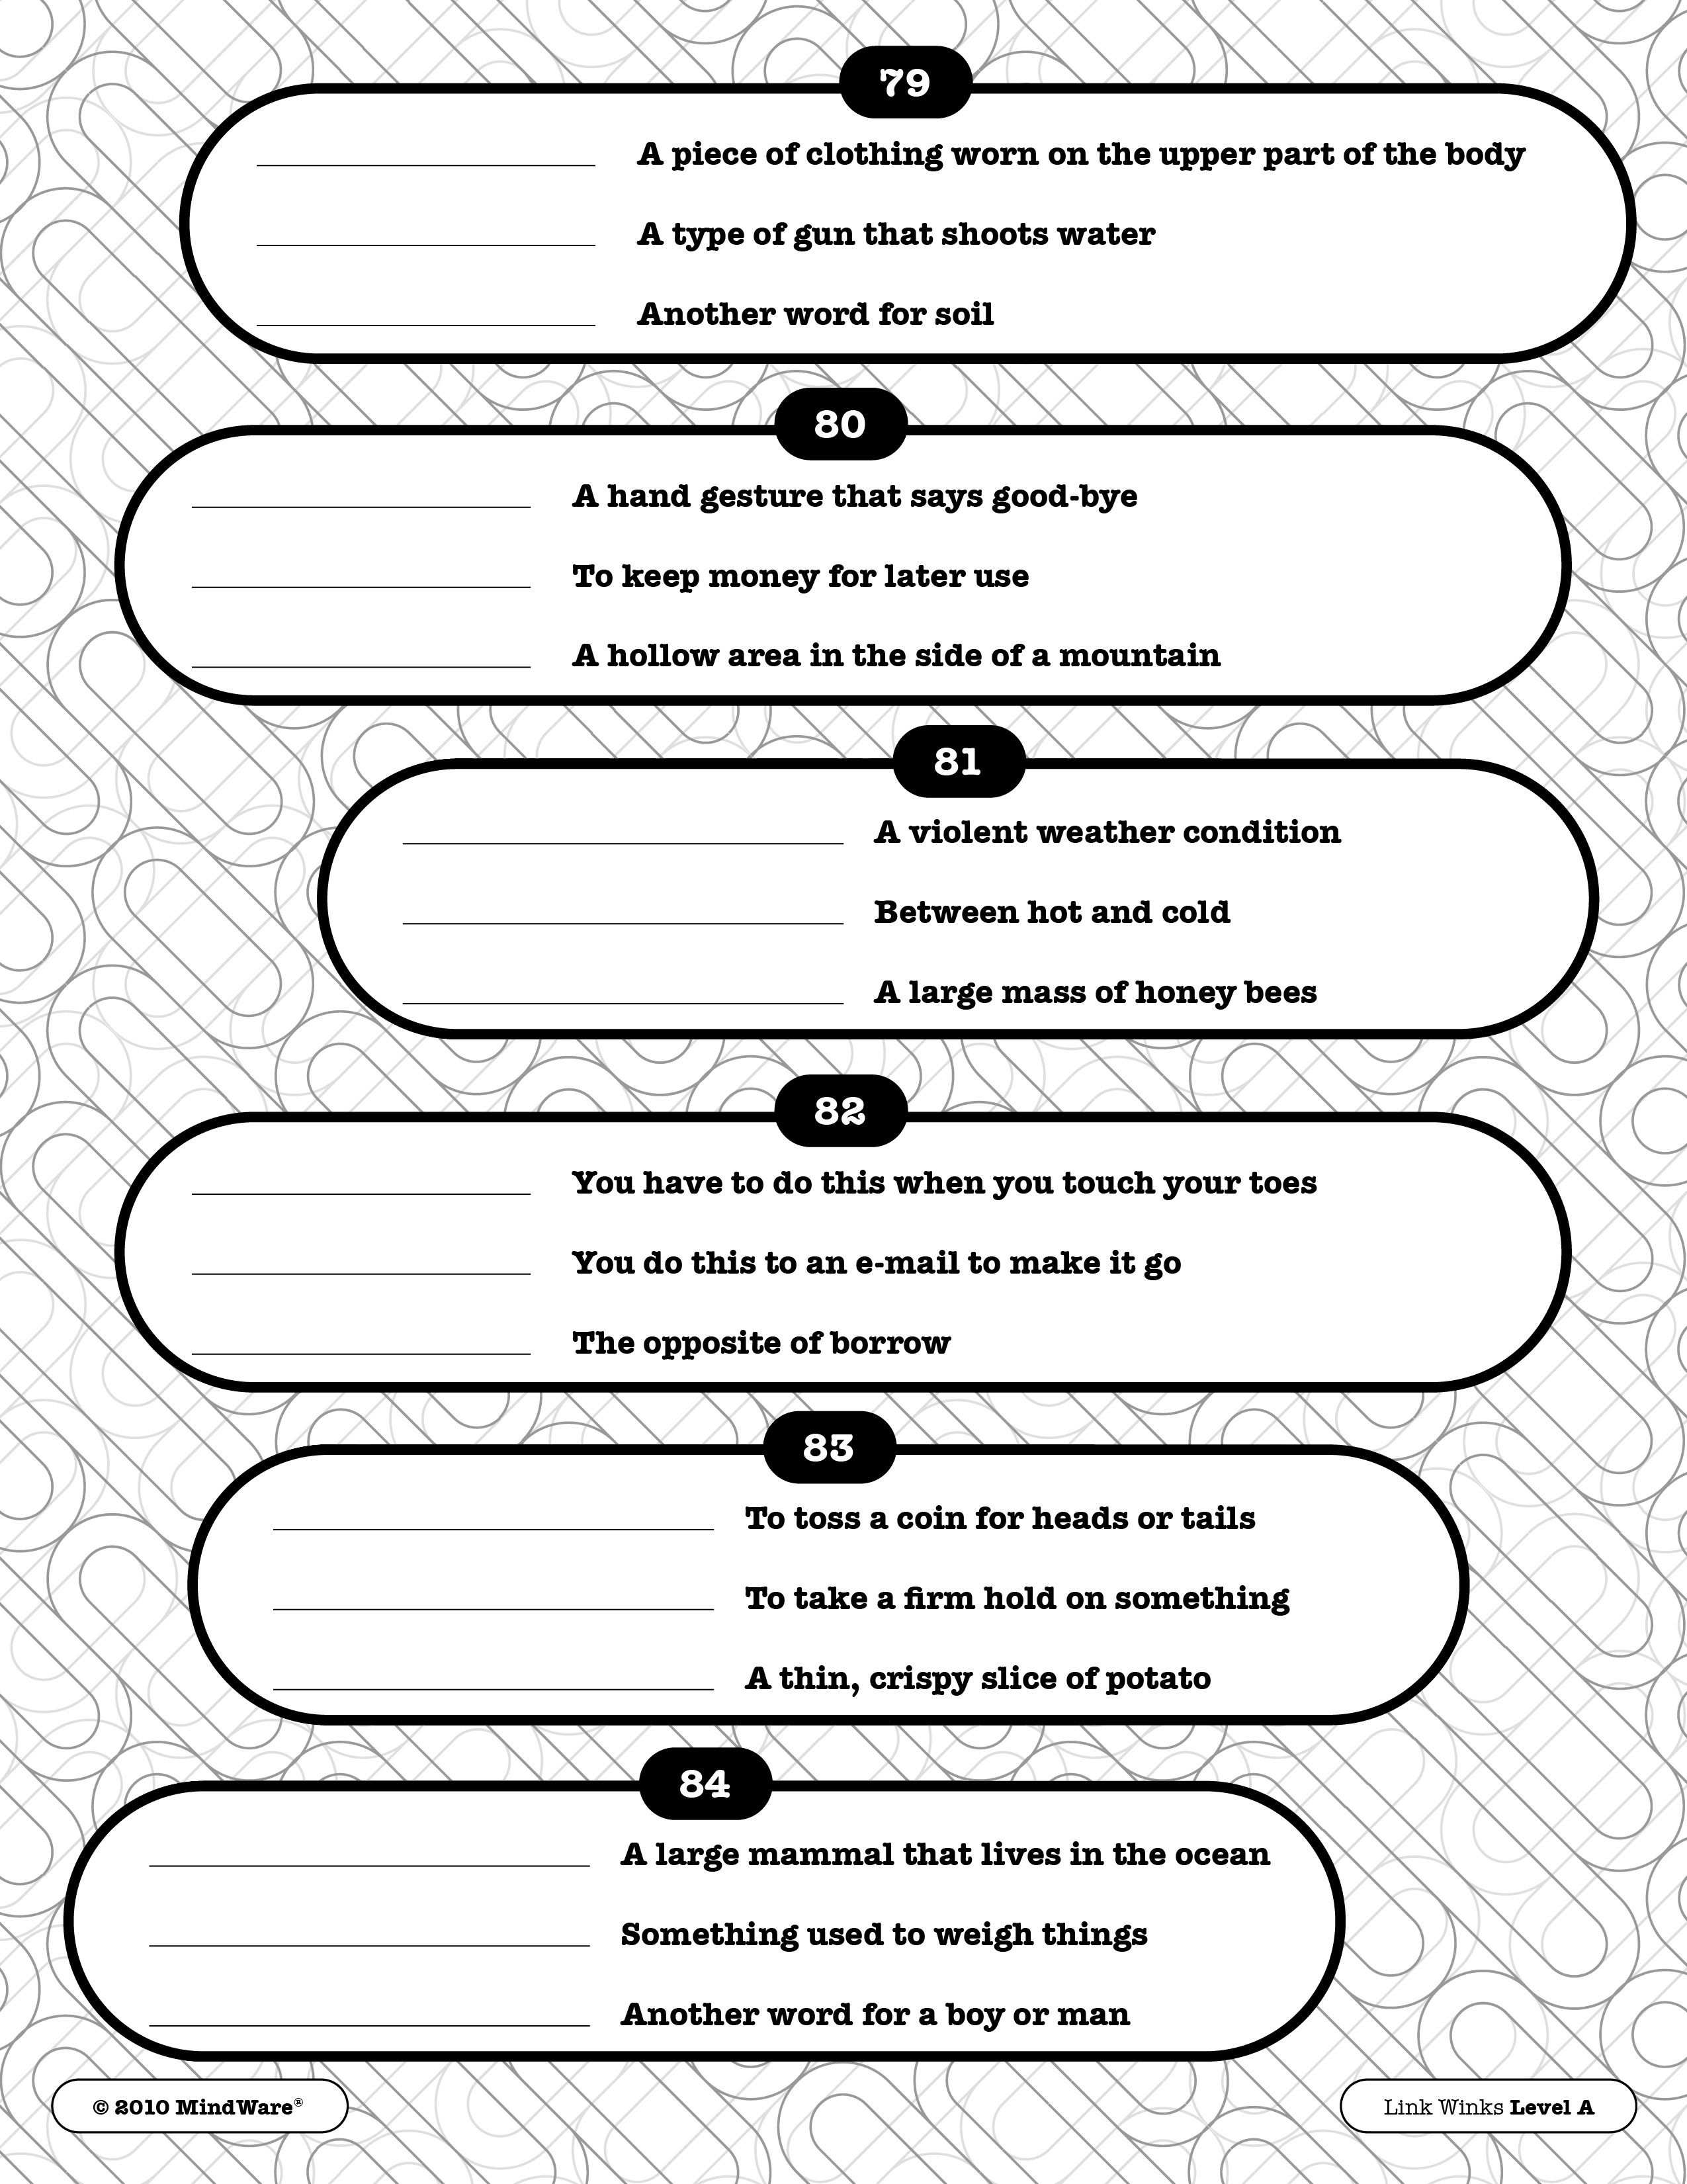 Get Your Brain Moving With A Page From Our Link Winks Level A Book - Free Printable Word Winks